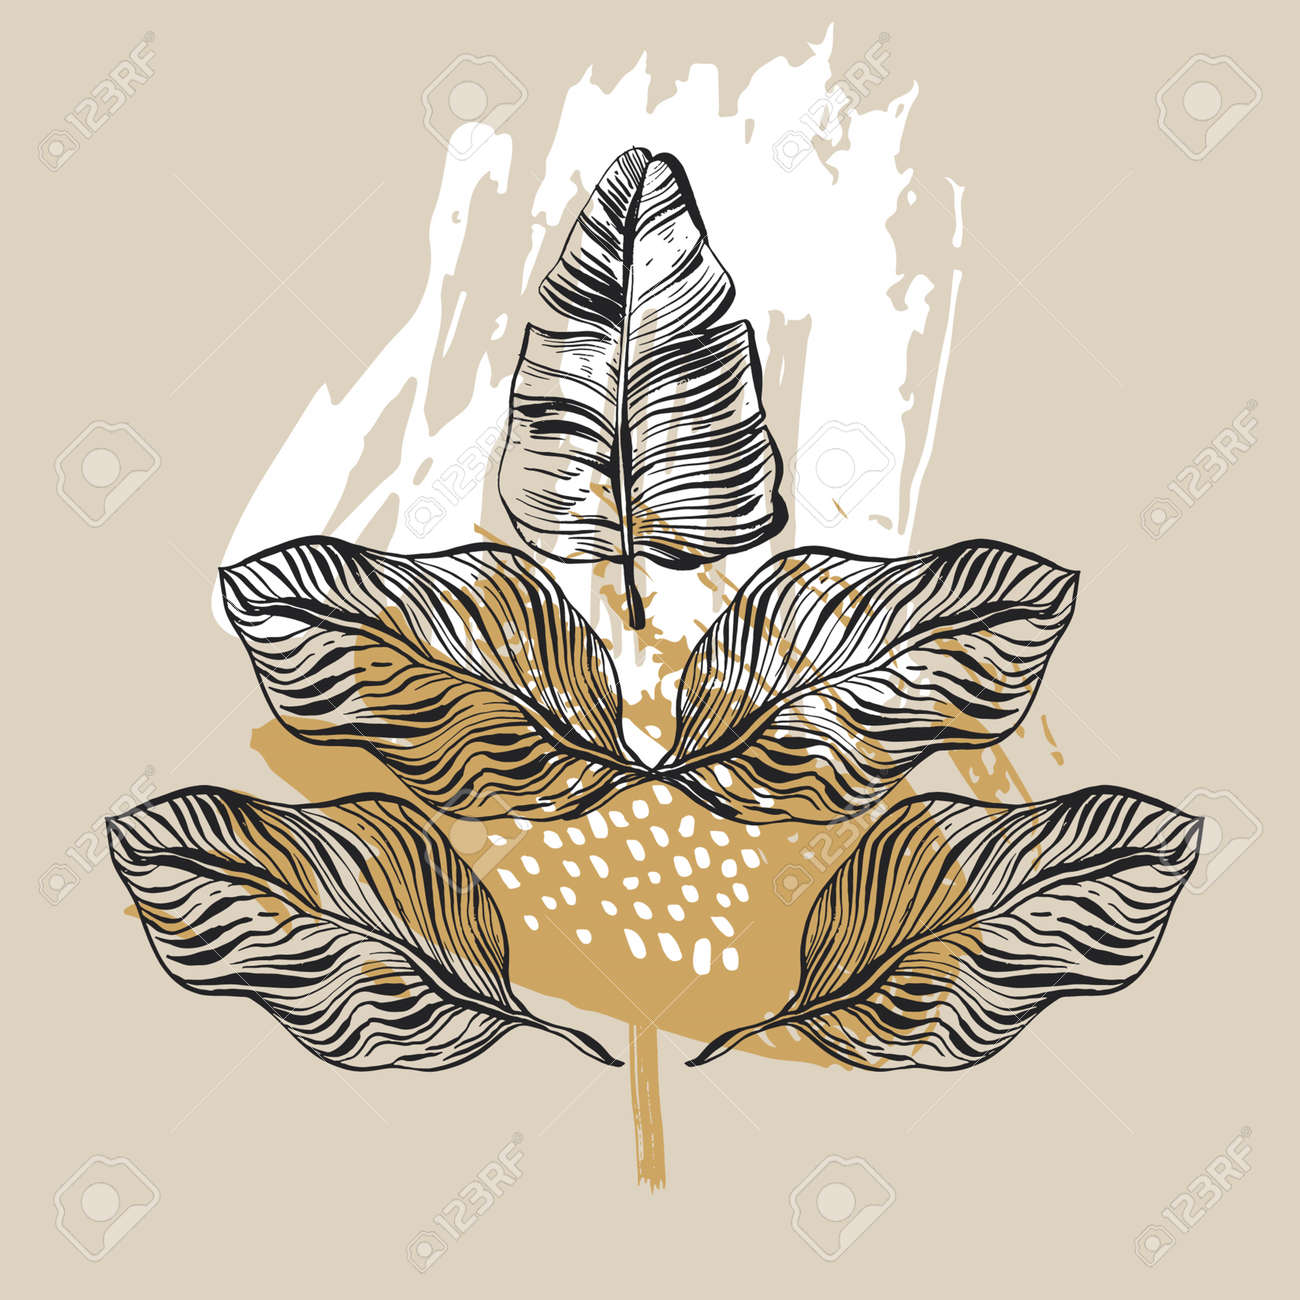 Hand drawn vector abstract graphic tropical xmas mirror print with palm leaves. Stock Vector - 81444053